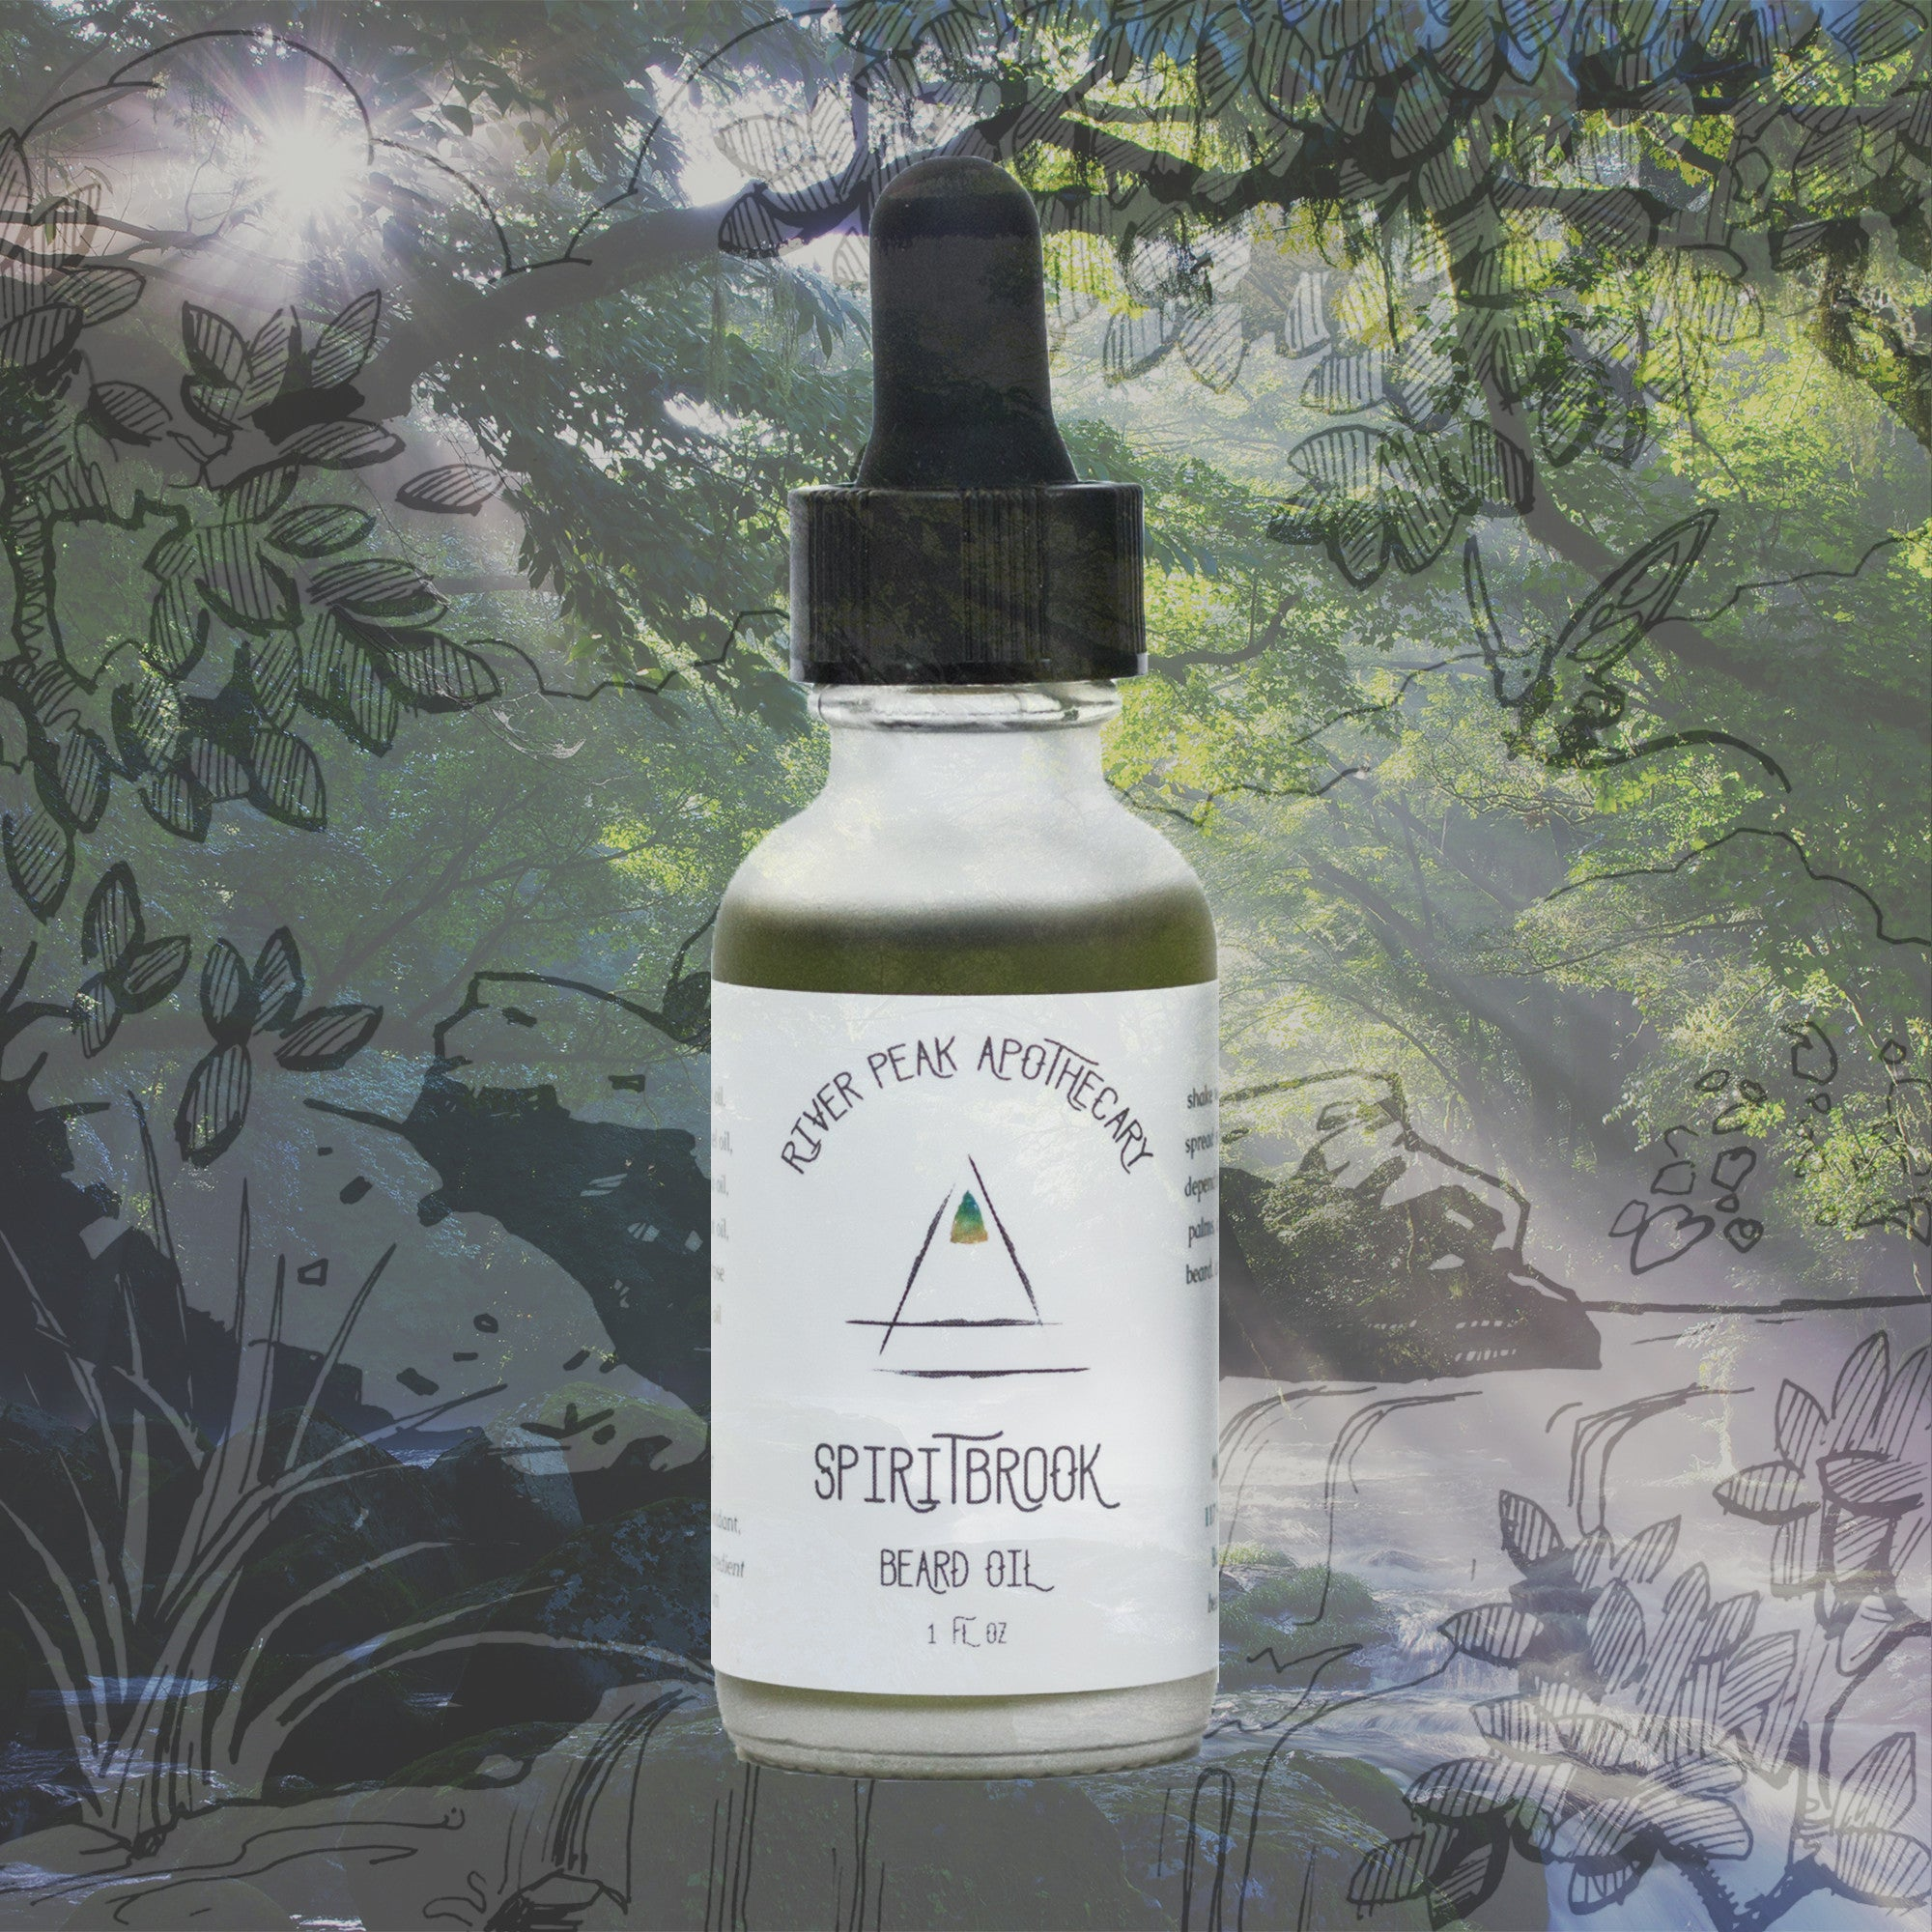 Spiritbrook Beard Oil • Gentle